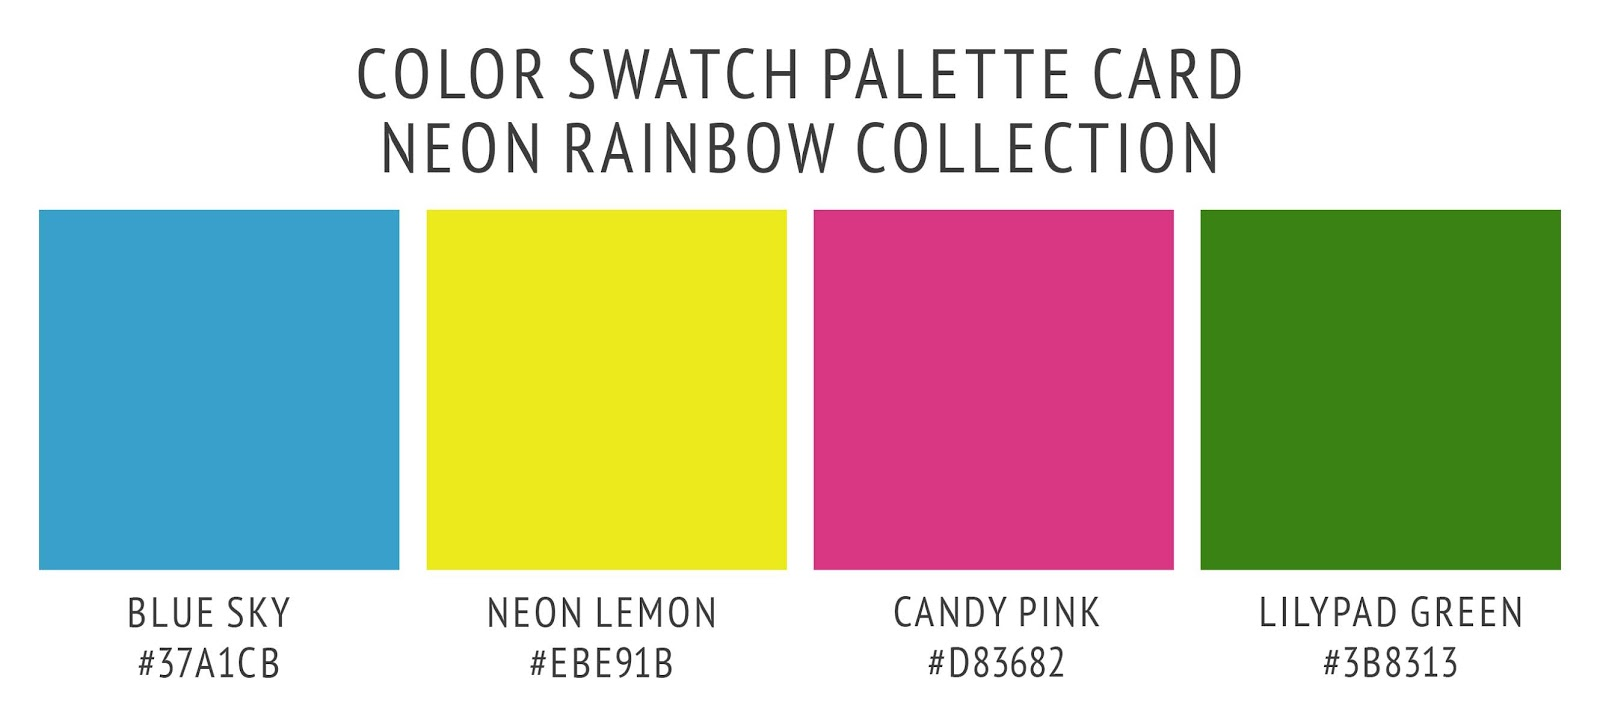 Neon Rainbow Color Palette Swatch Card in Blue Sky, Neon Lemon Yellow, Lilypad Green, and candy Pink